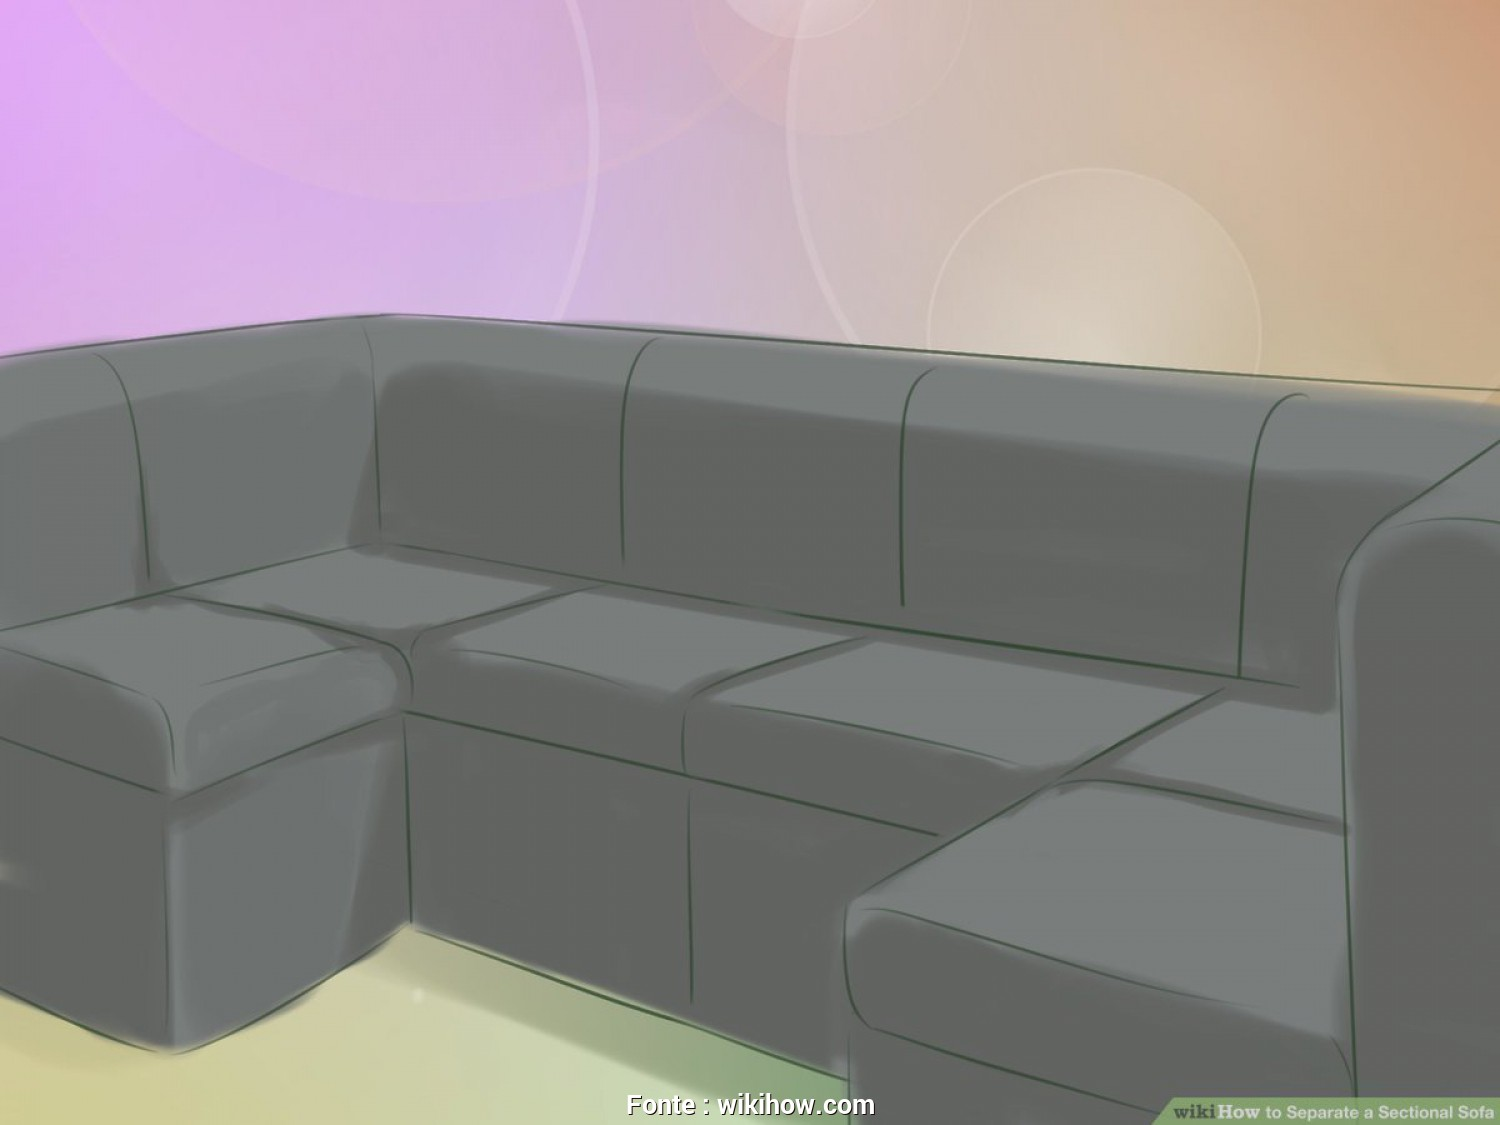 Divani E Divani By Natuzzi Wikipedia, Divertente How To Separate A Sectional Sofa: 10 Steps (With Pictures)